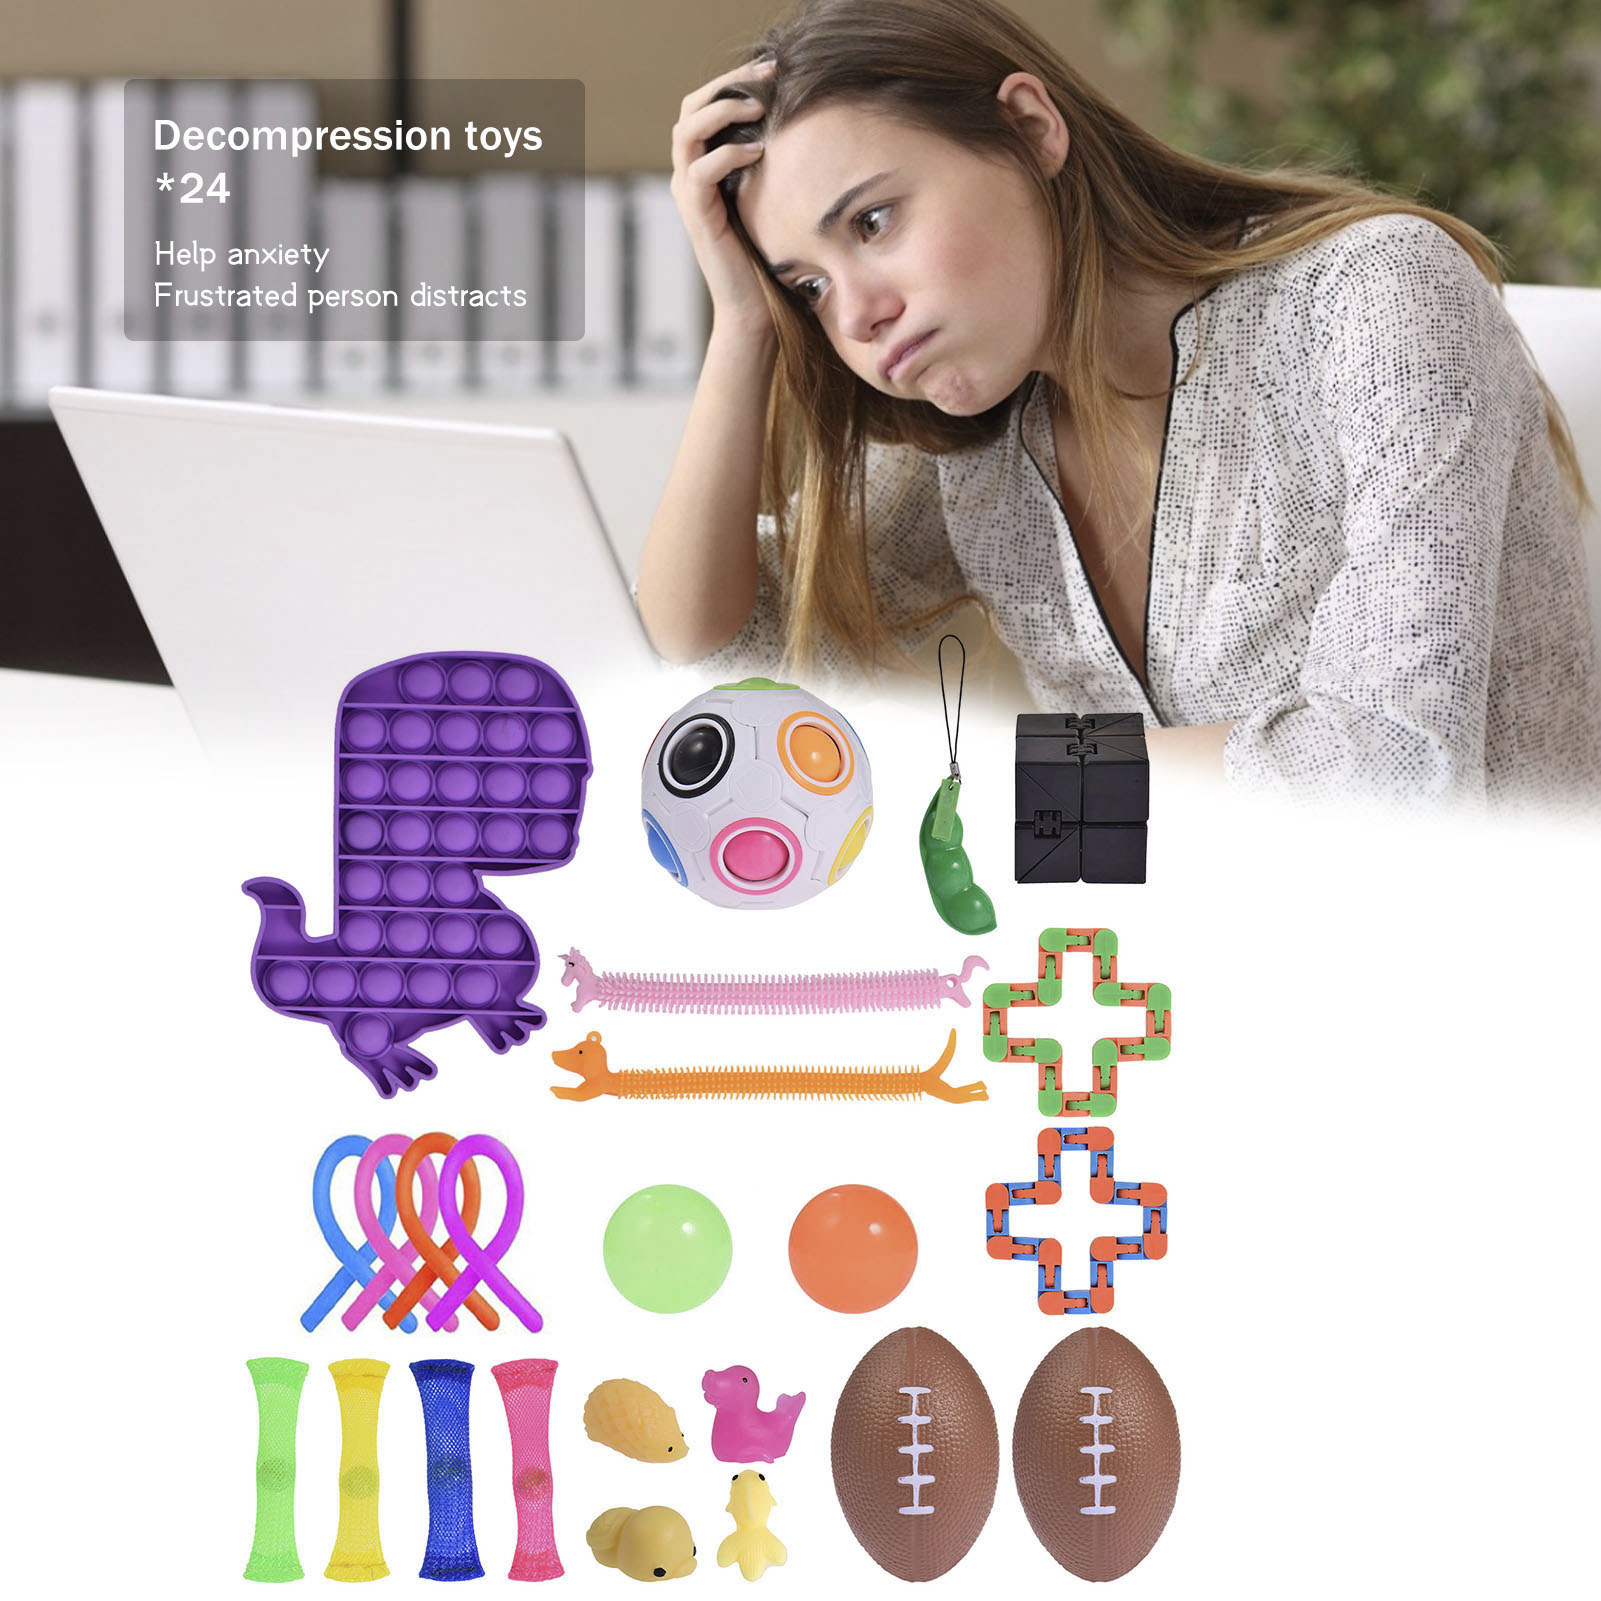 24PCS Sensory Fidget Toy Silicone Stress Relief Anti-Anxiety Toy Suitable For Children And Adults enlarge